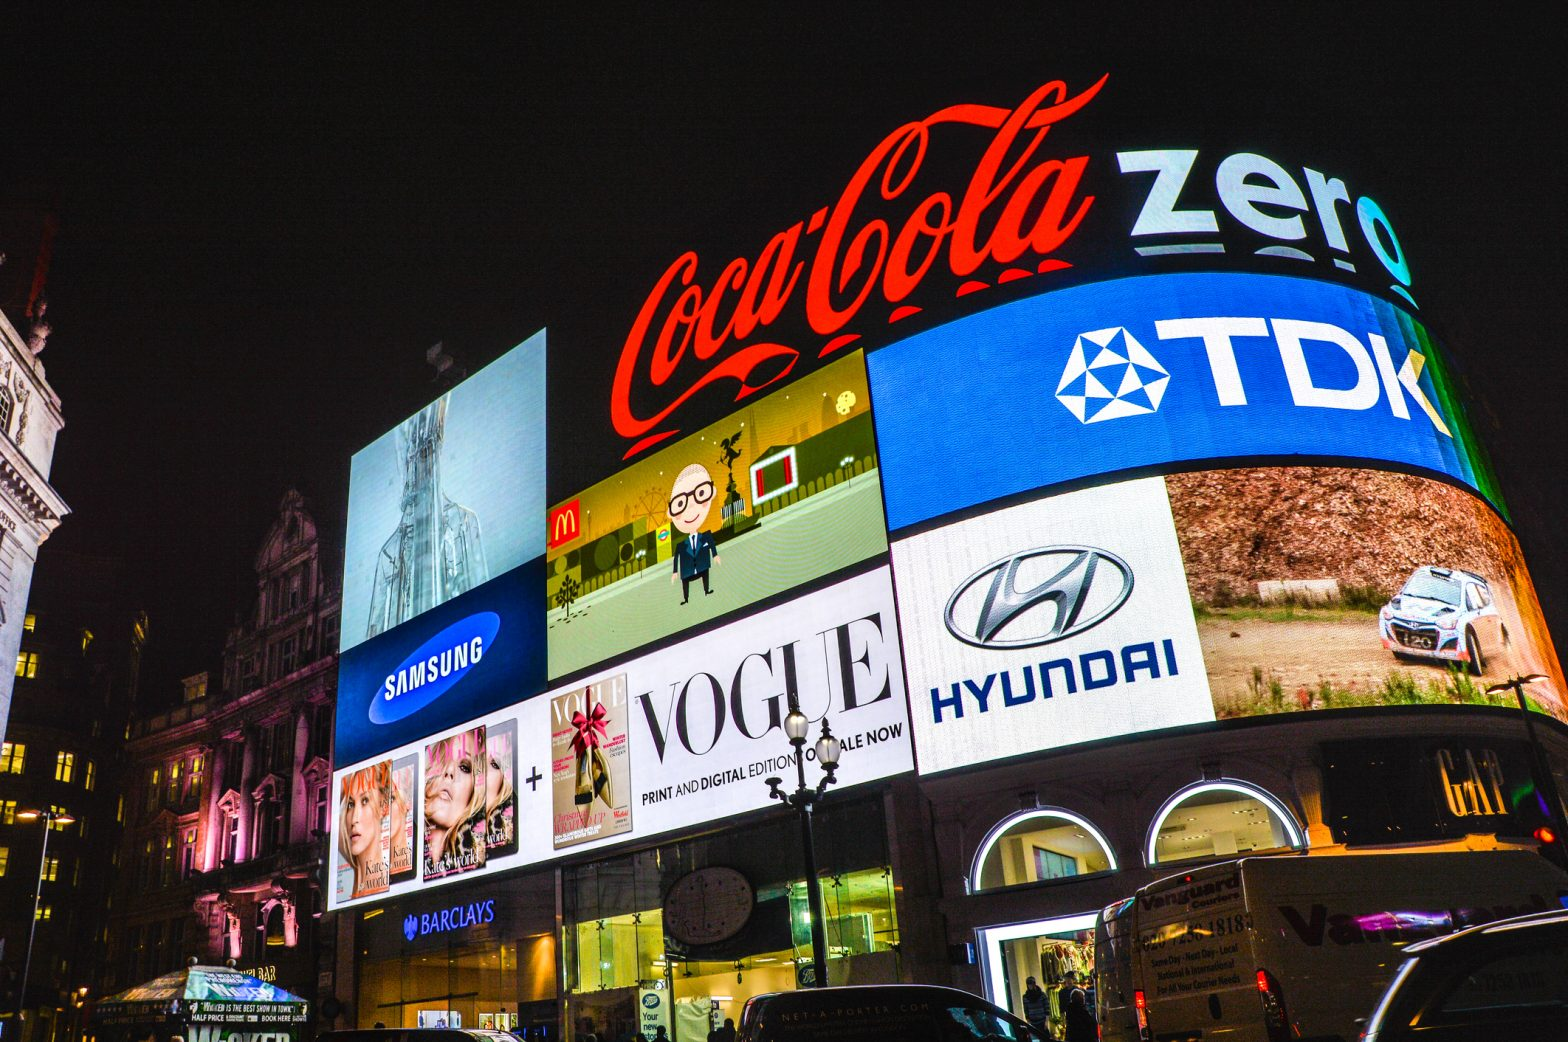 A billboard covered in adverts and brand logos,